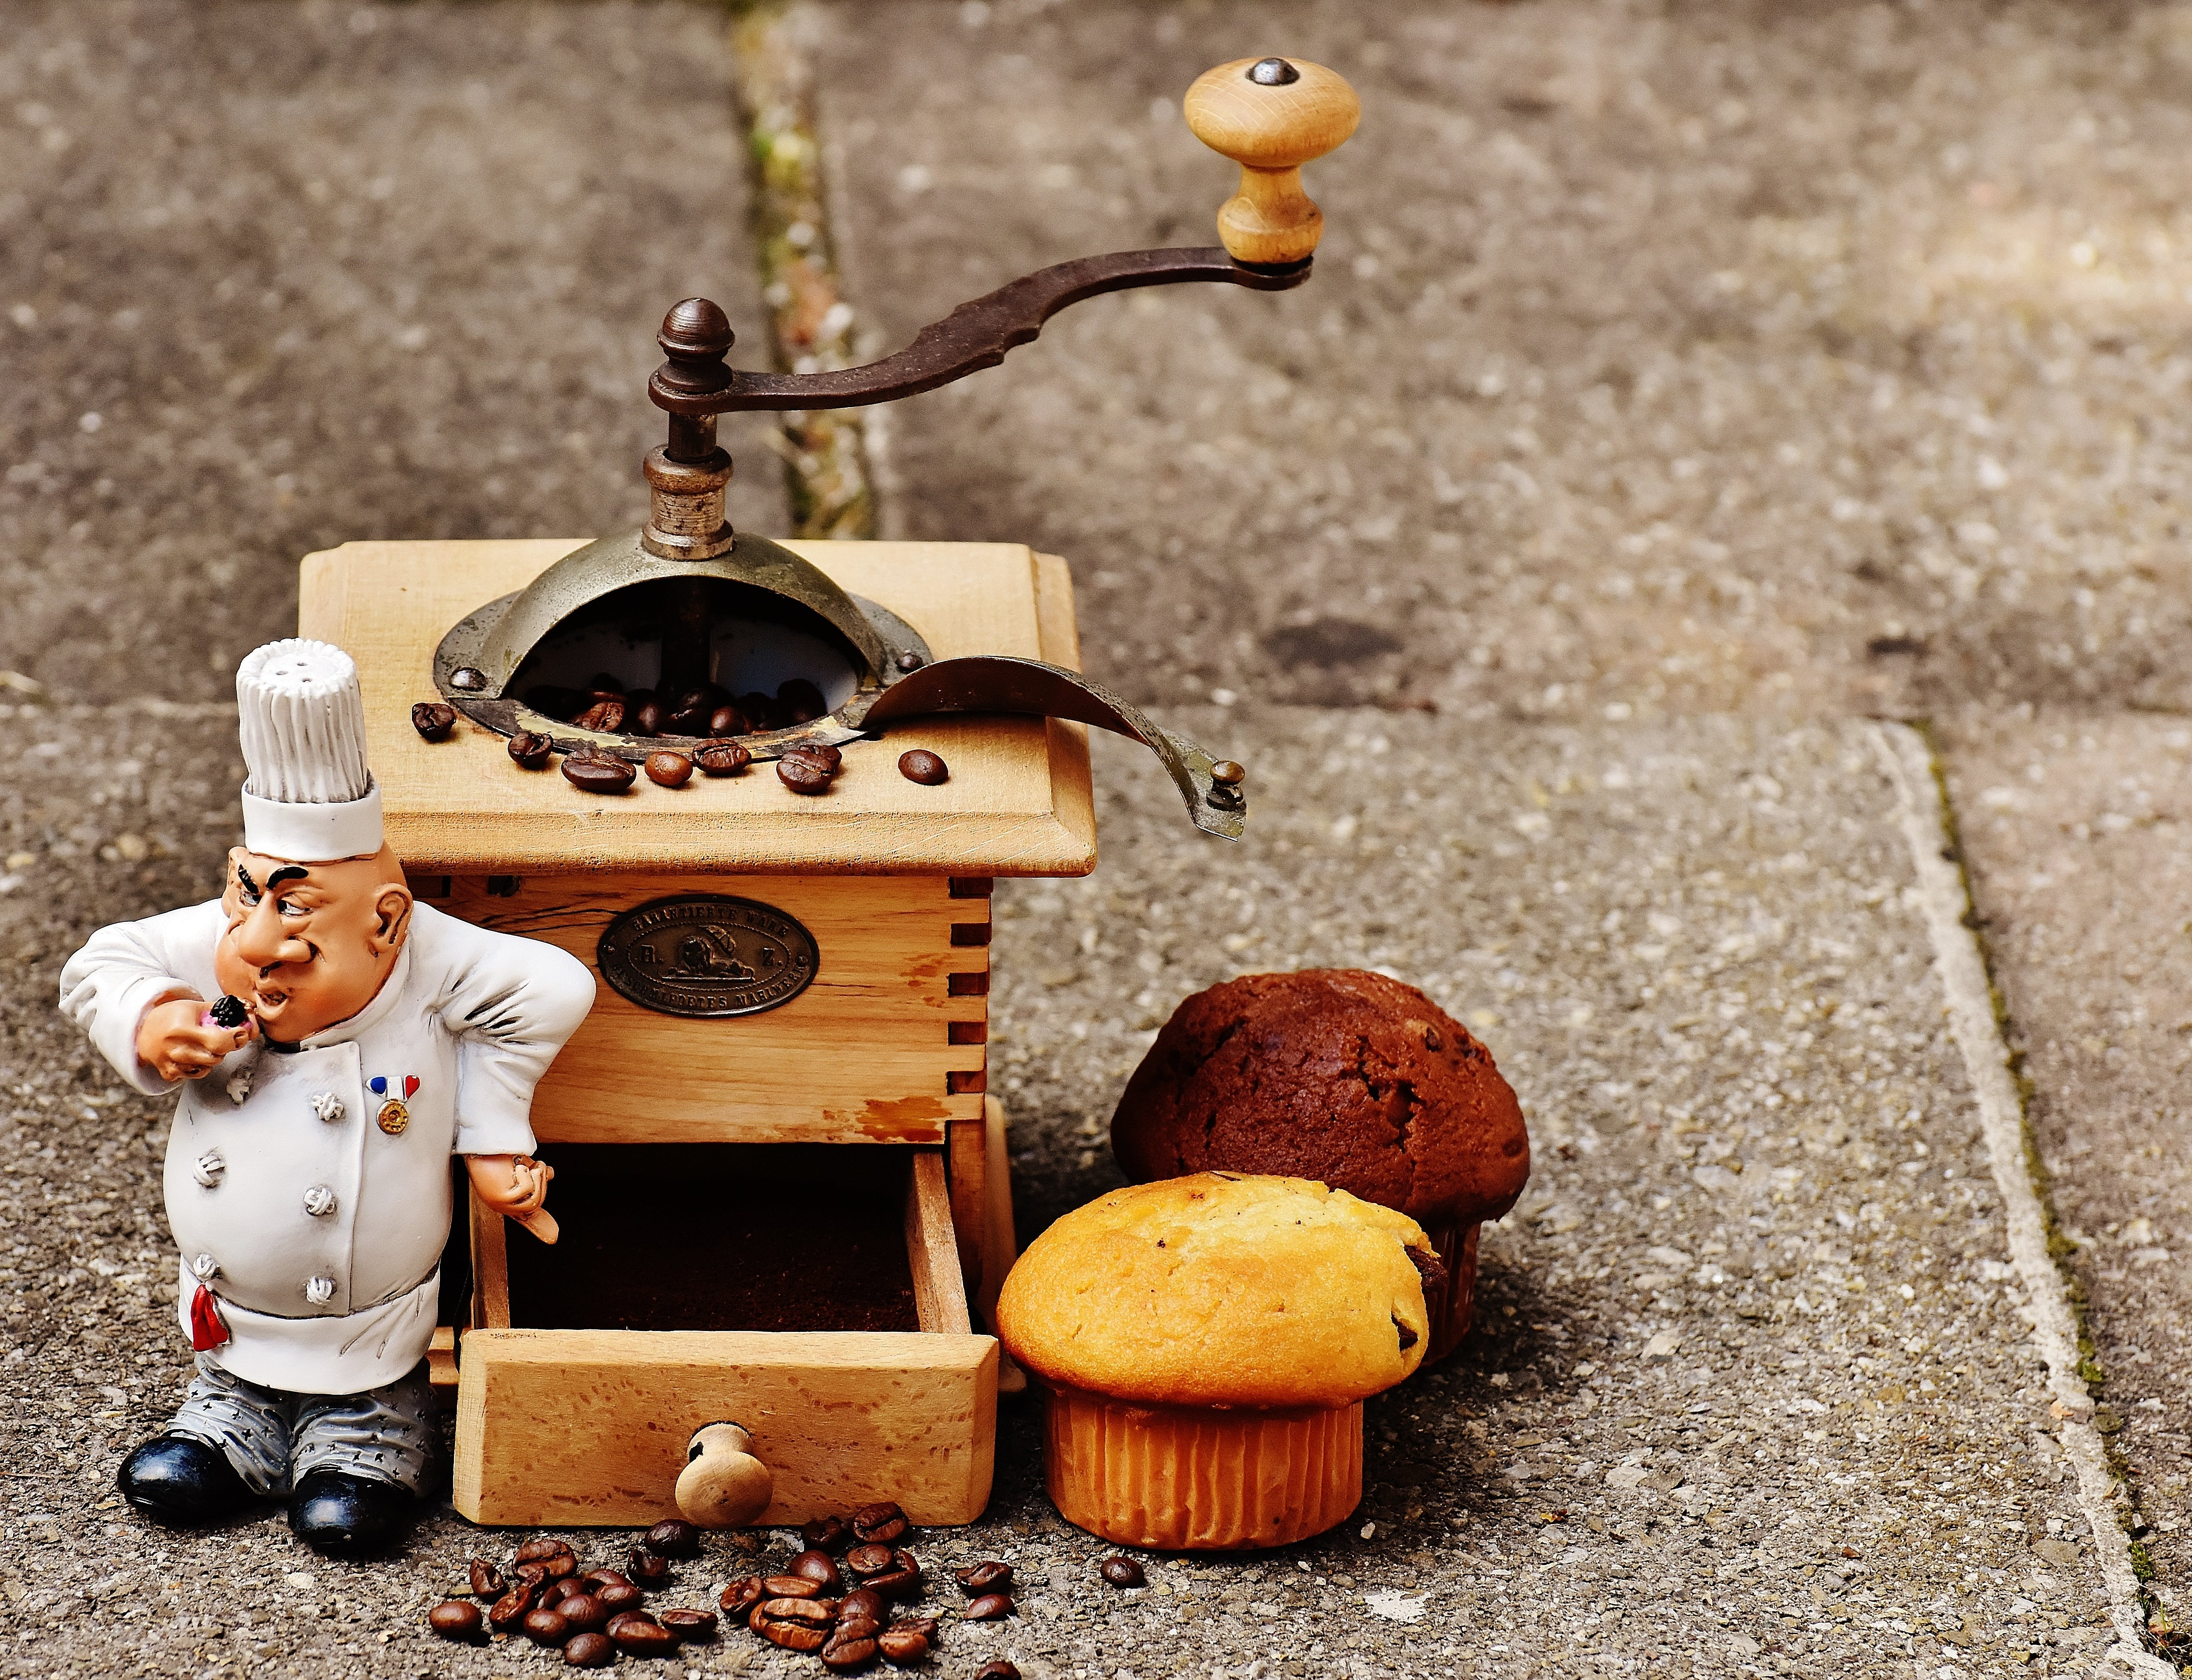 Miniature Chef Figurine on Gray Surface